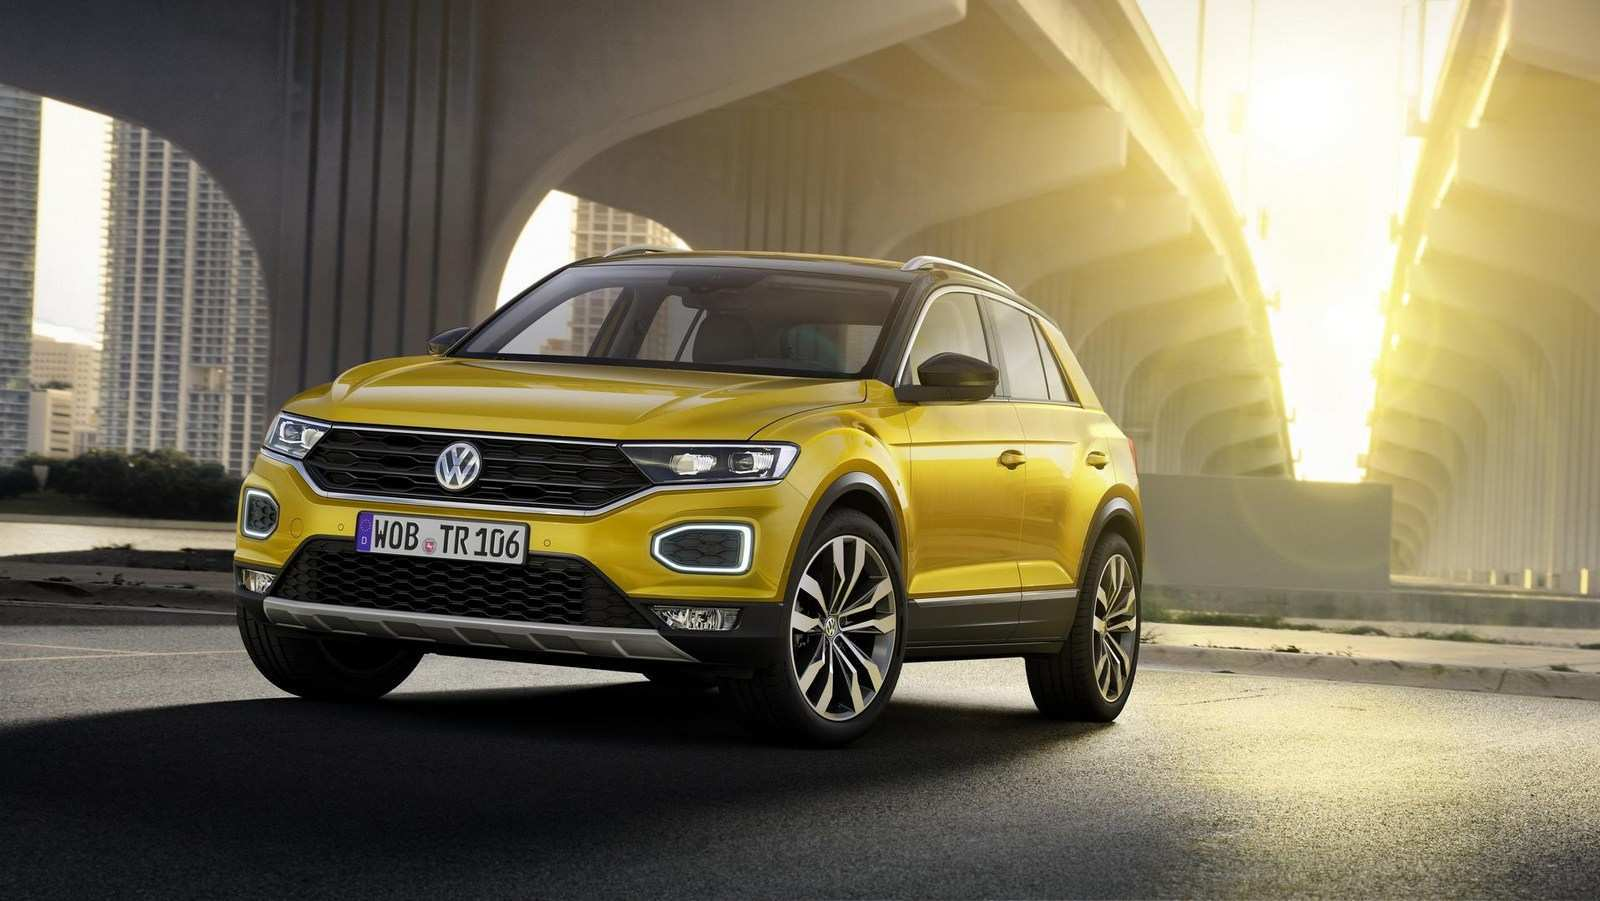 88 Concept of 2019 Volkswagen Crossover Spy Shoot for 2019 Volkswagen Crossover